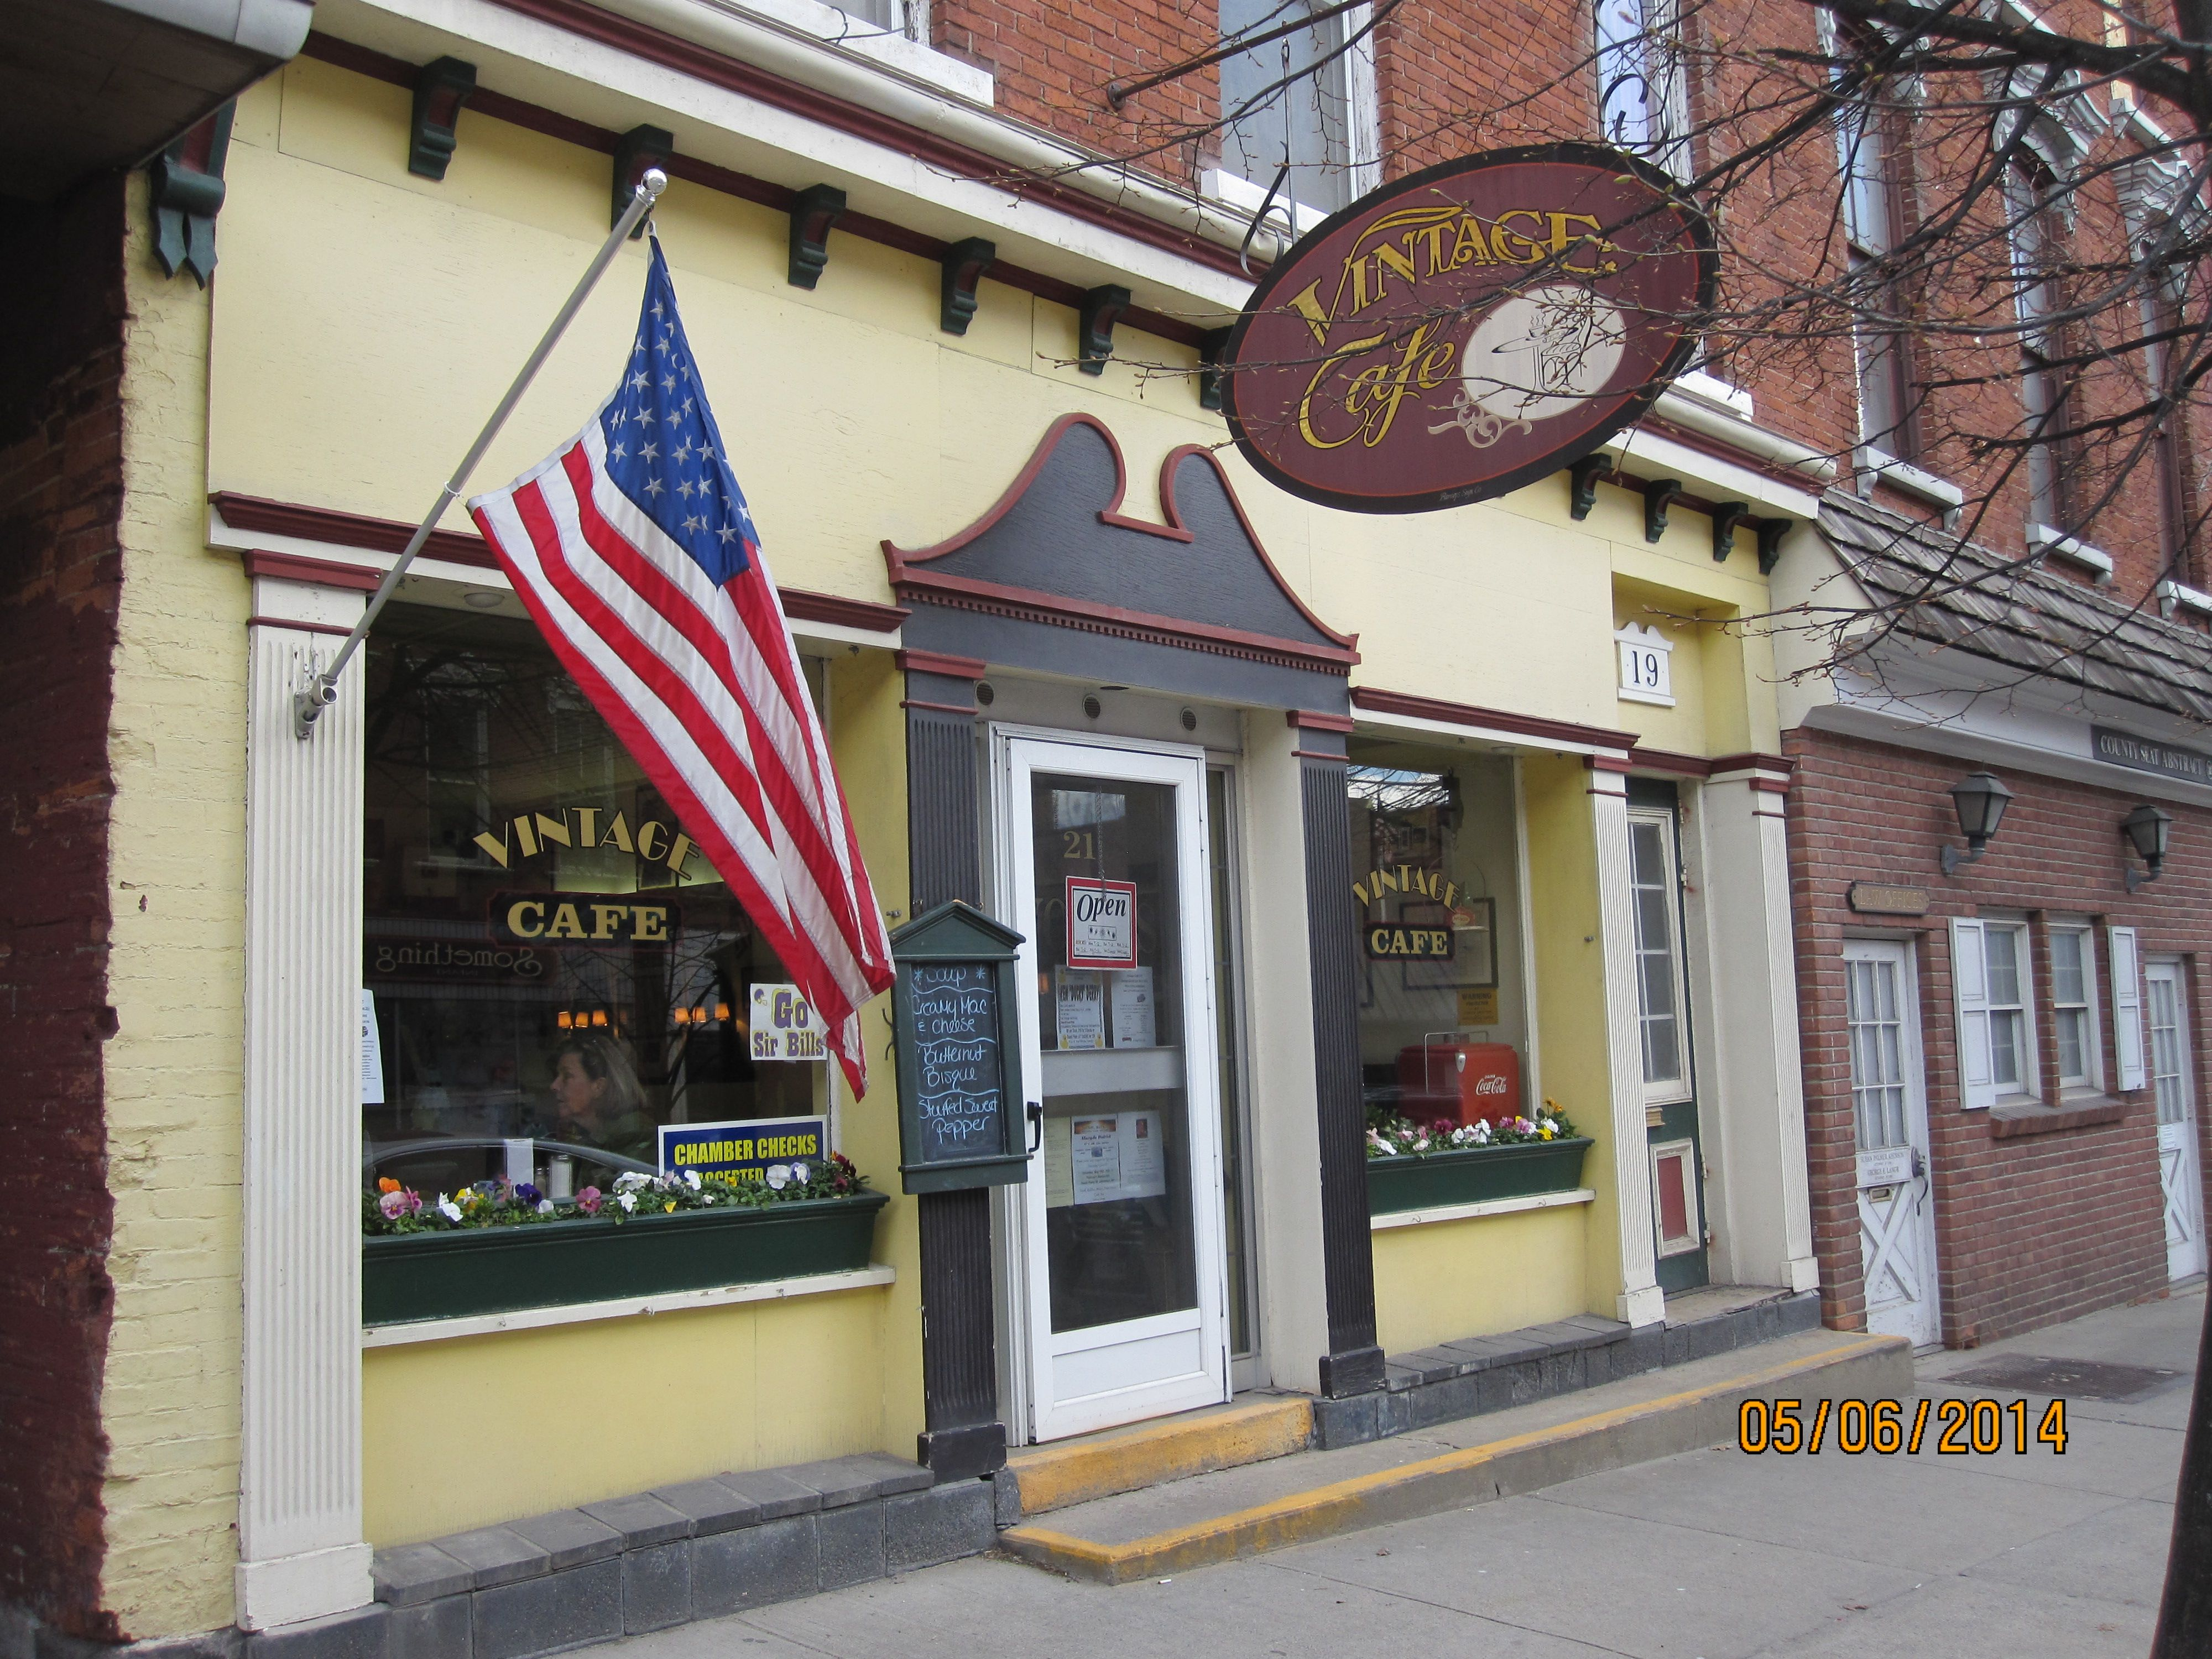 The Vintage Cafe A Great Retro Cafe On Main Street In Johnstown Ny Terrific Breakfasts Lunches And Baked Goods Retro Cafe Vintage Cafe Cafe